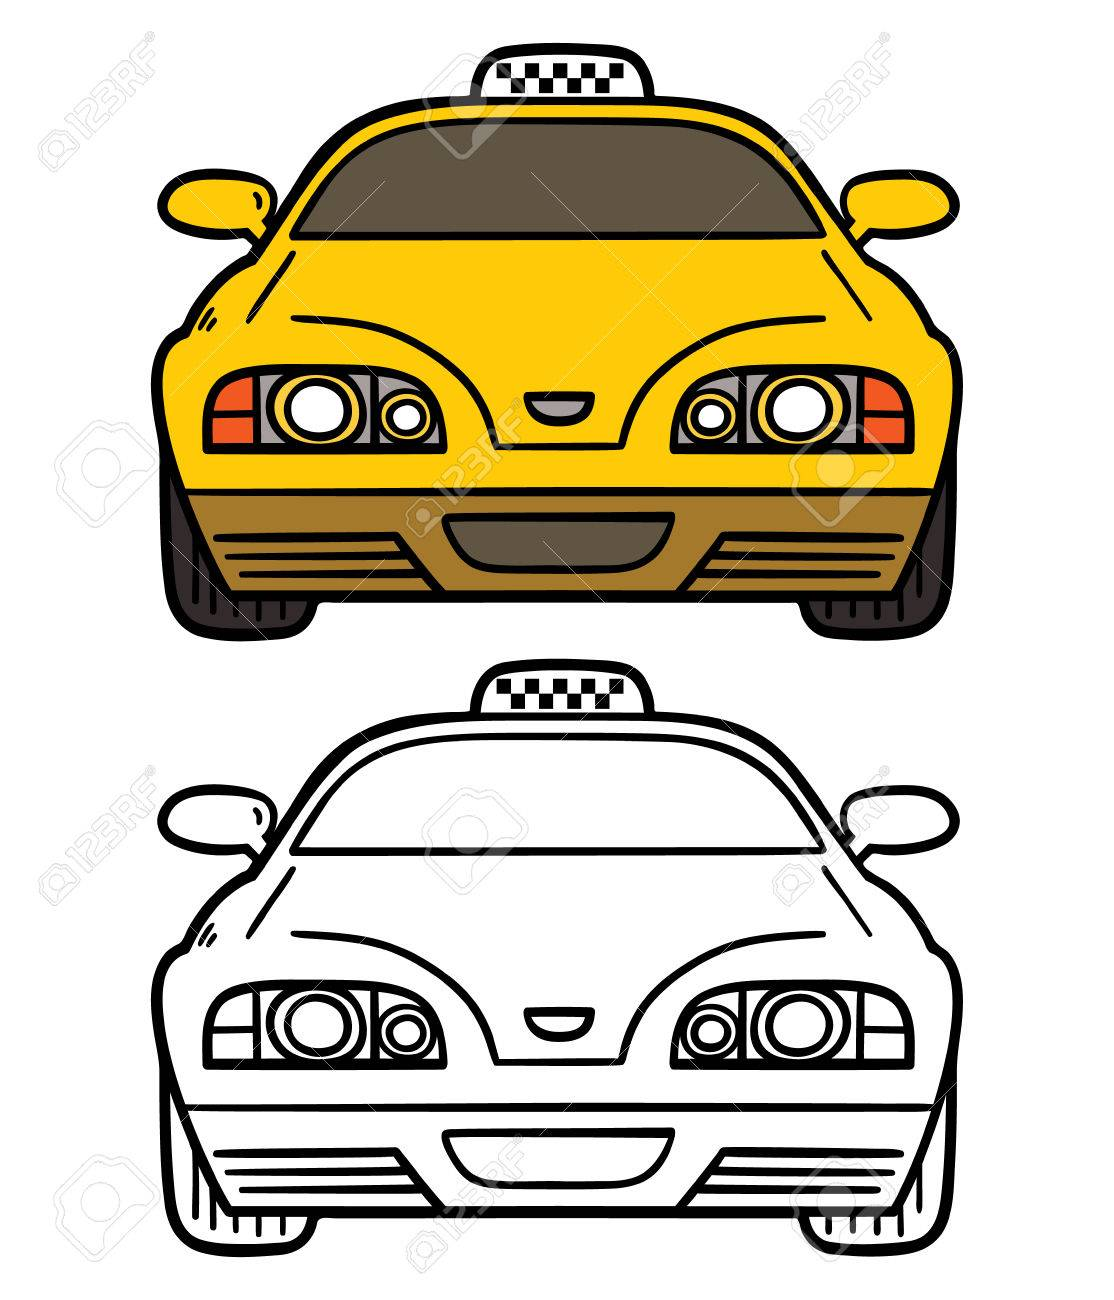 Yellow Cab Vector Illustration Coloring Page Of Cartoon Taxi